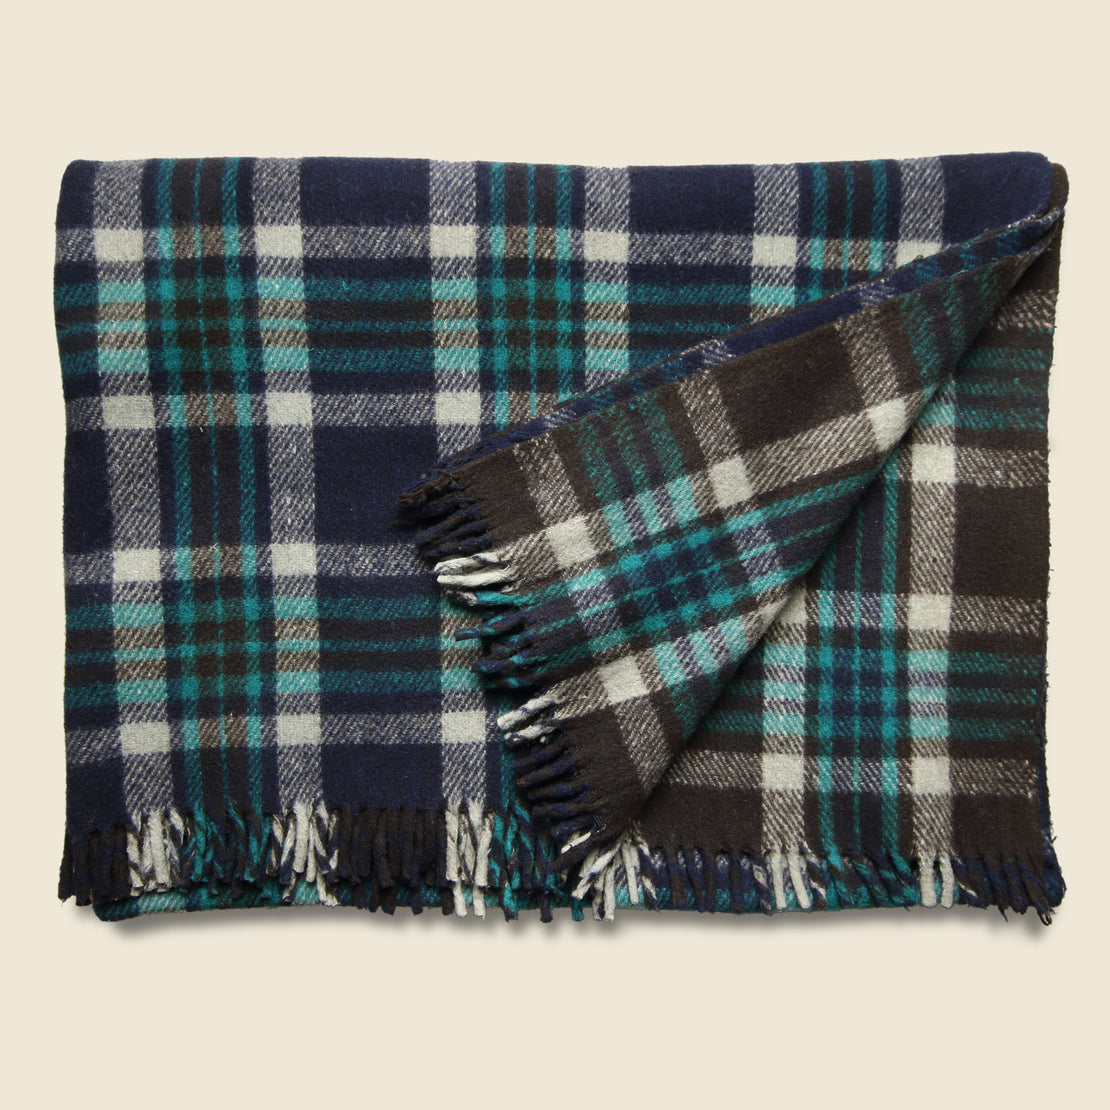 Vintage Vintage Indian Wool Plaid Blanket - Navy/White/Teal